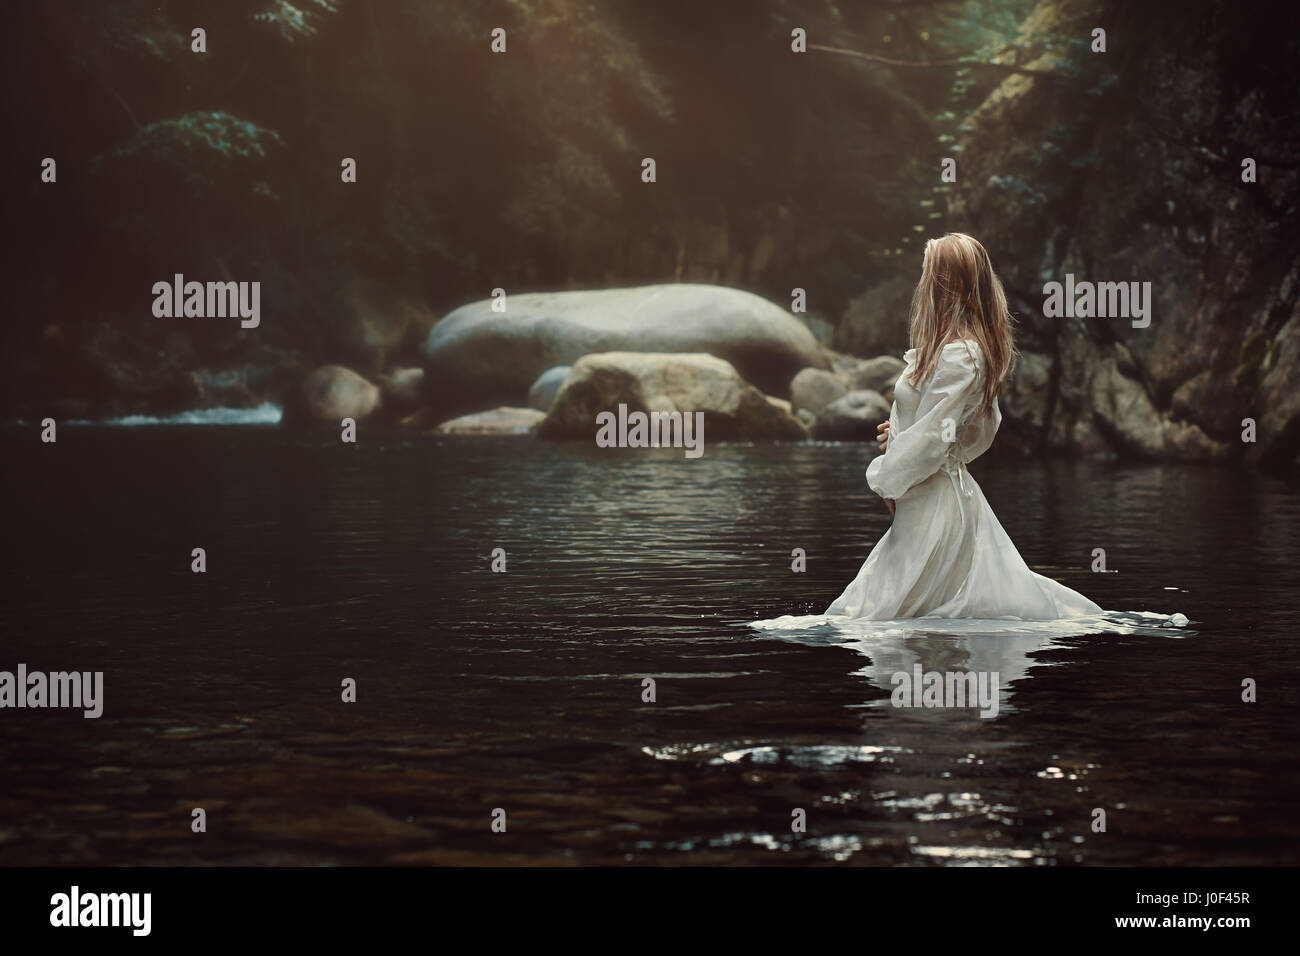 Beautiful victorian woman in mystical stream. Fantasy and fairytale - Stock Image